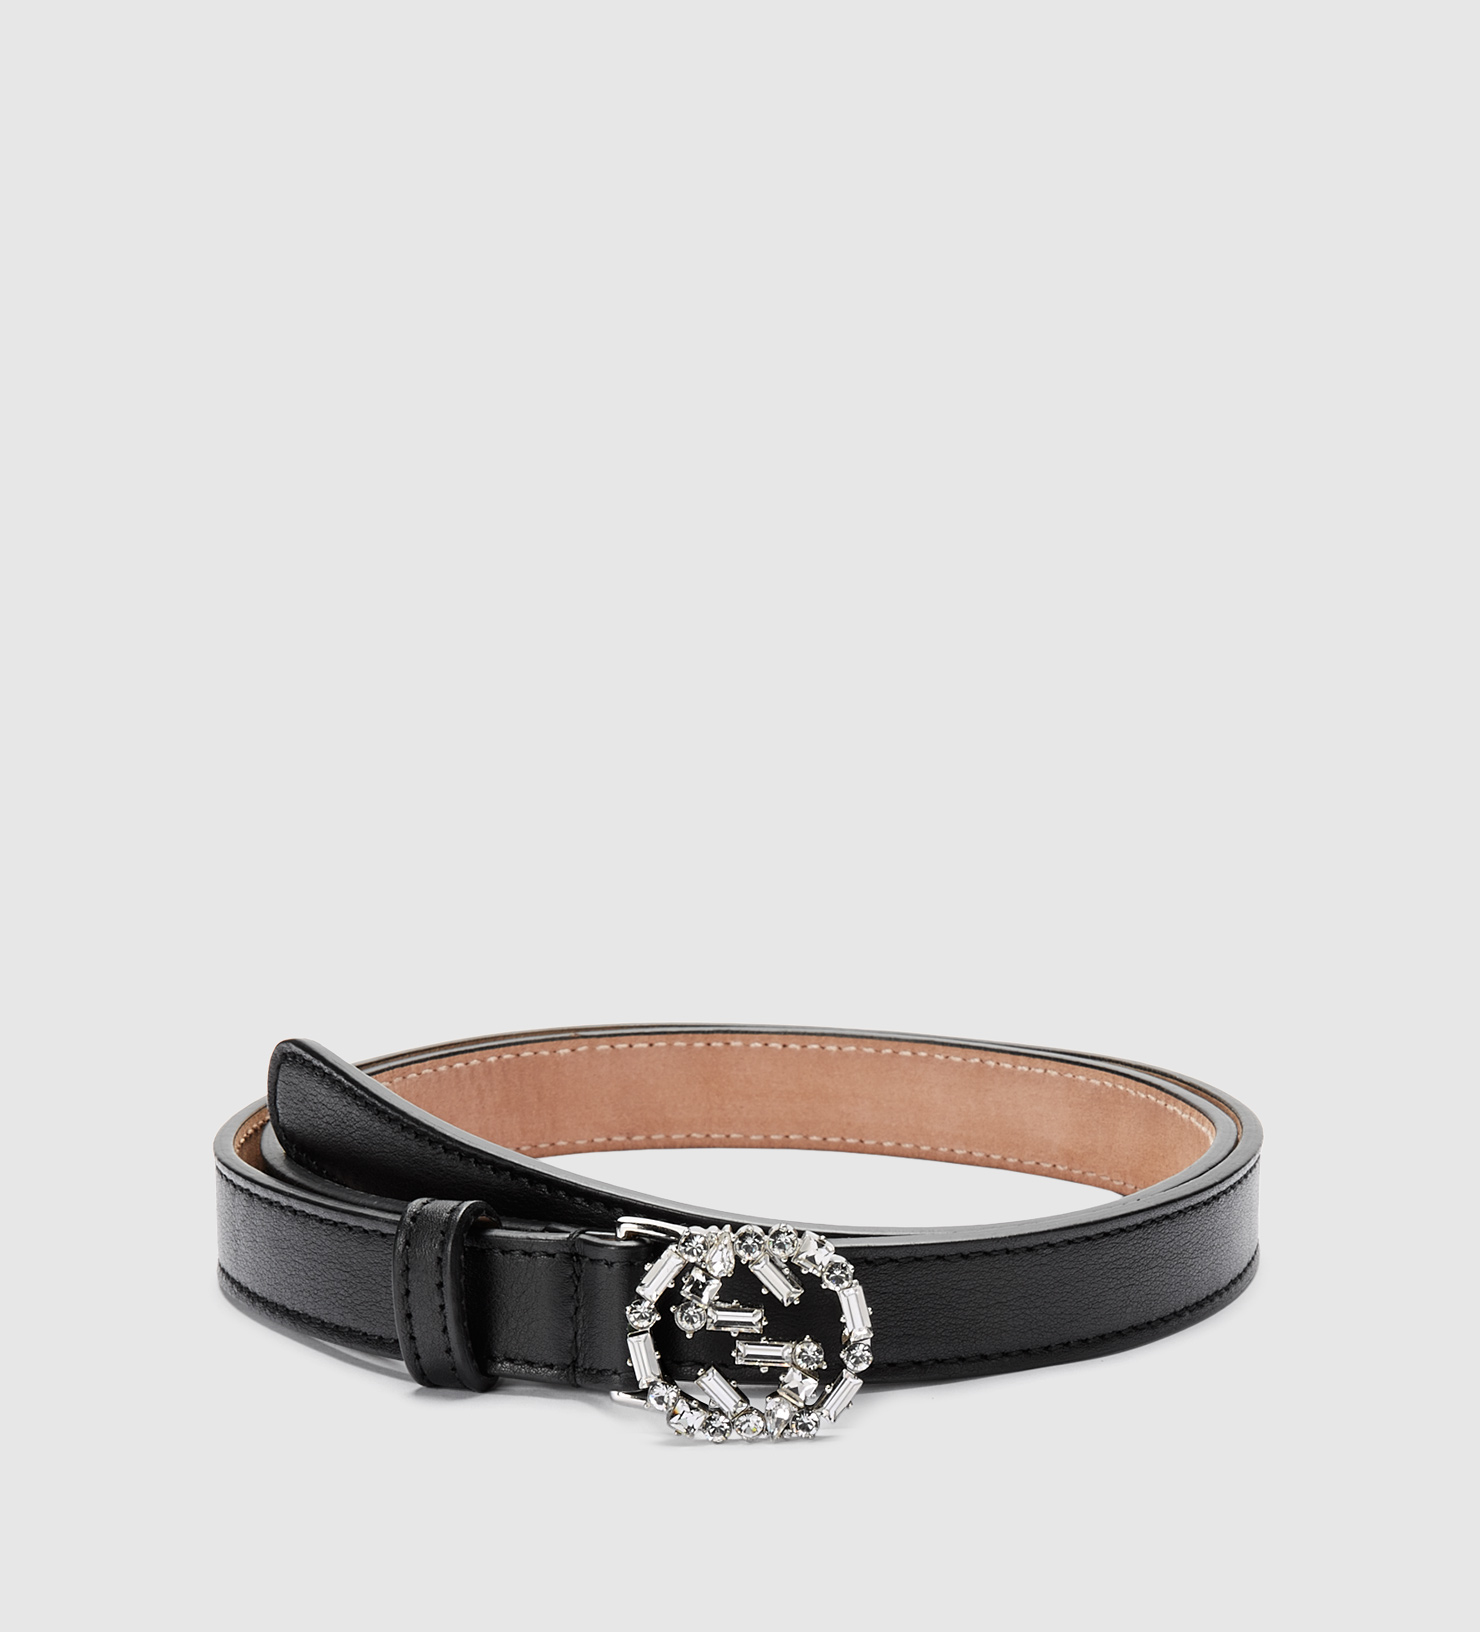 d5515d6c74a Gucci Black Leather Belt With Crystal Interlocking G Buckle in Black ...